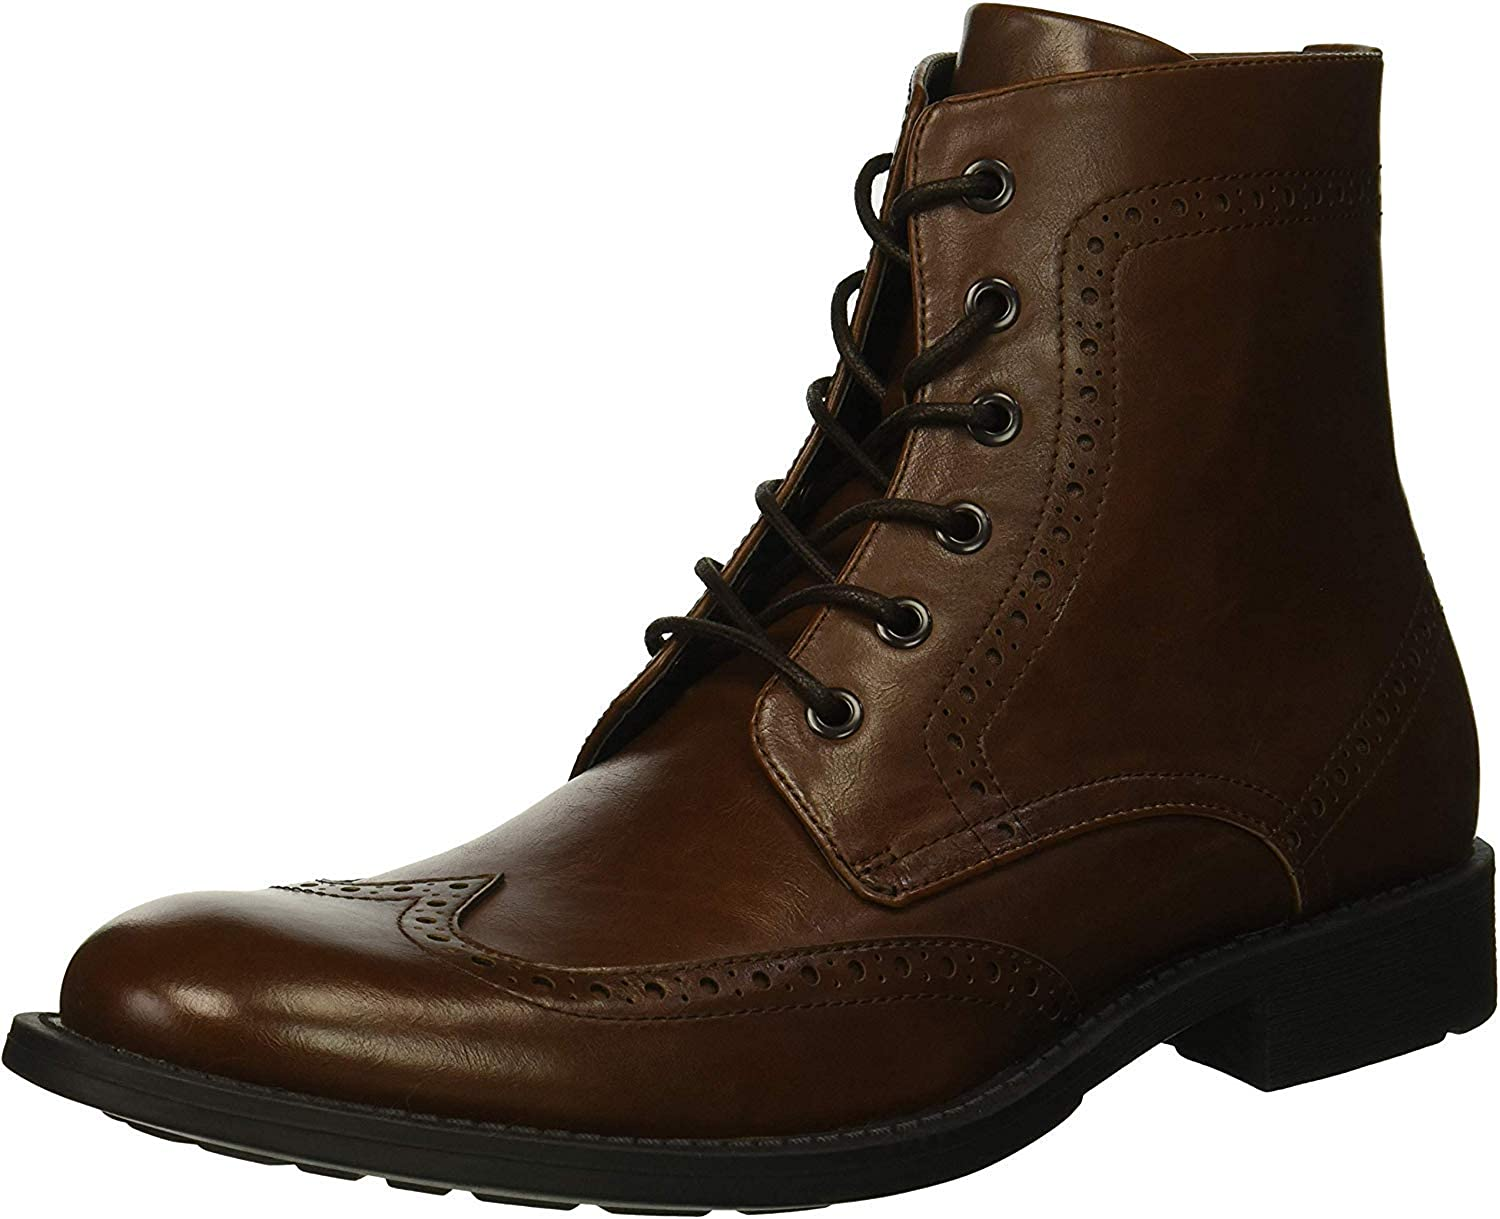 Blind-Sided Oxford Boot